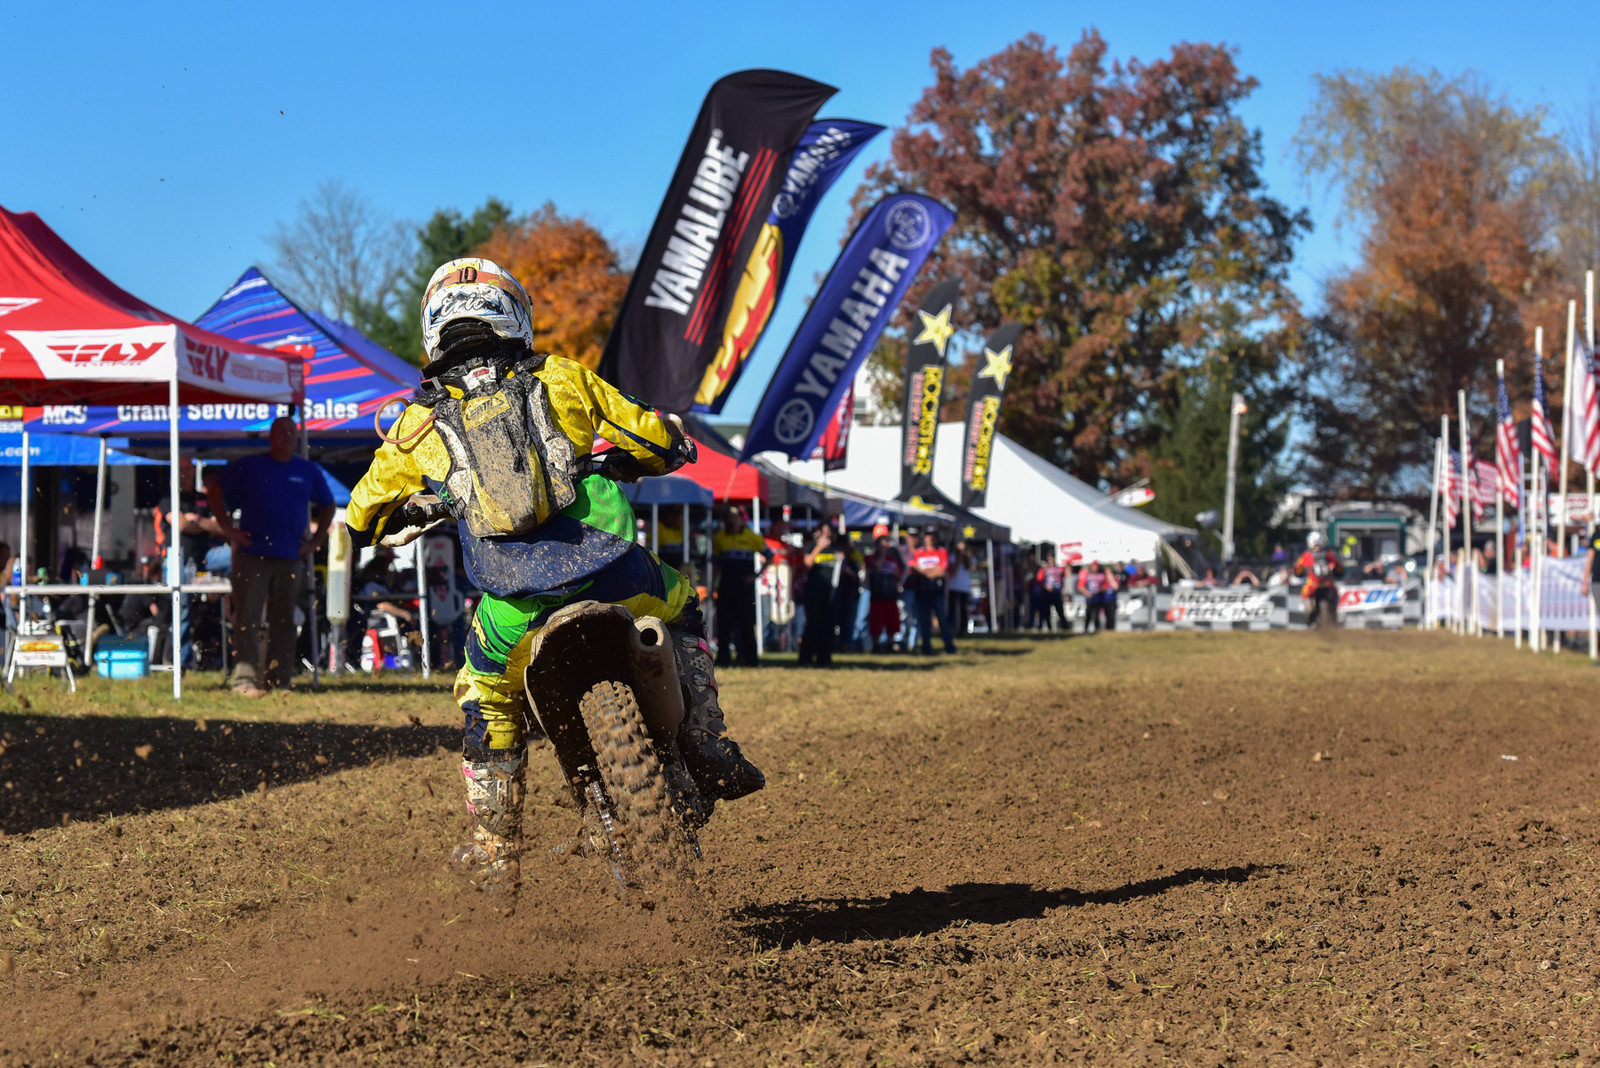 Another lap - Photo Blast: Ironman GNCC - Motocross Pictures - Vital MX